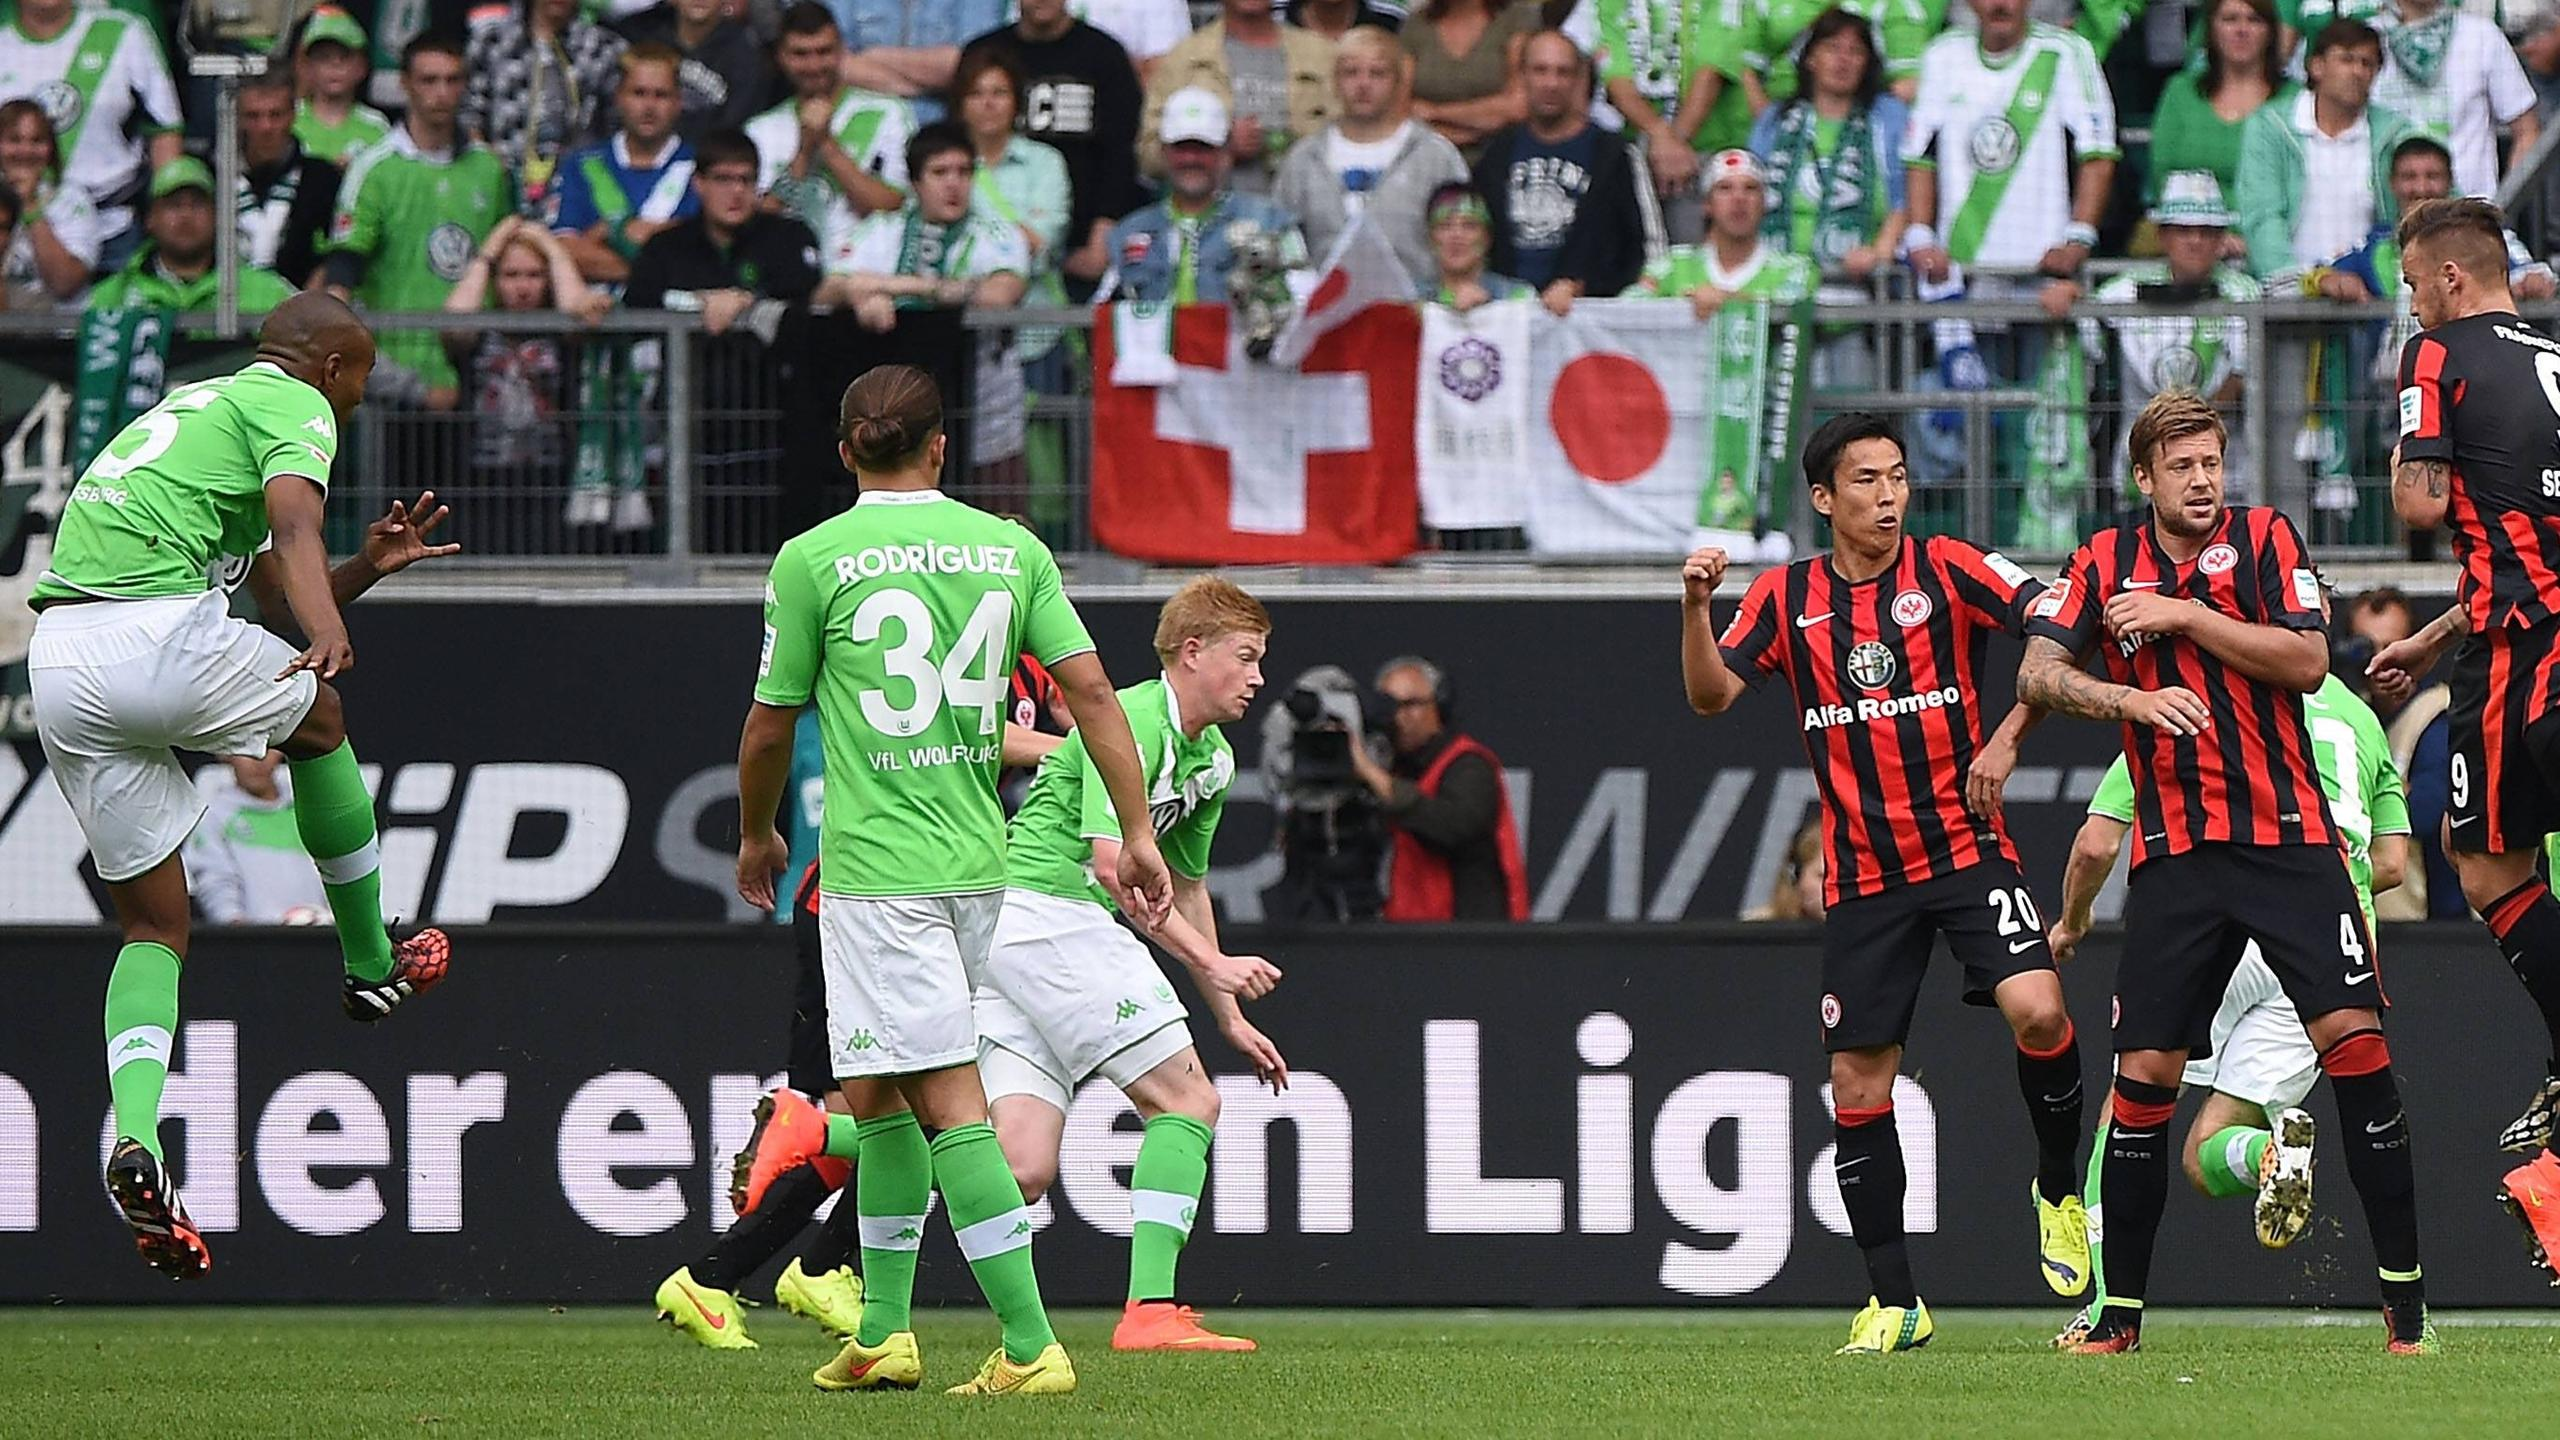 Video: Wolfsburg vs Eintracht Frankfurt